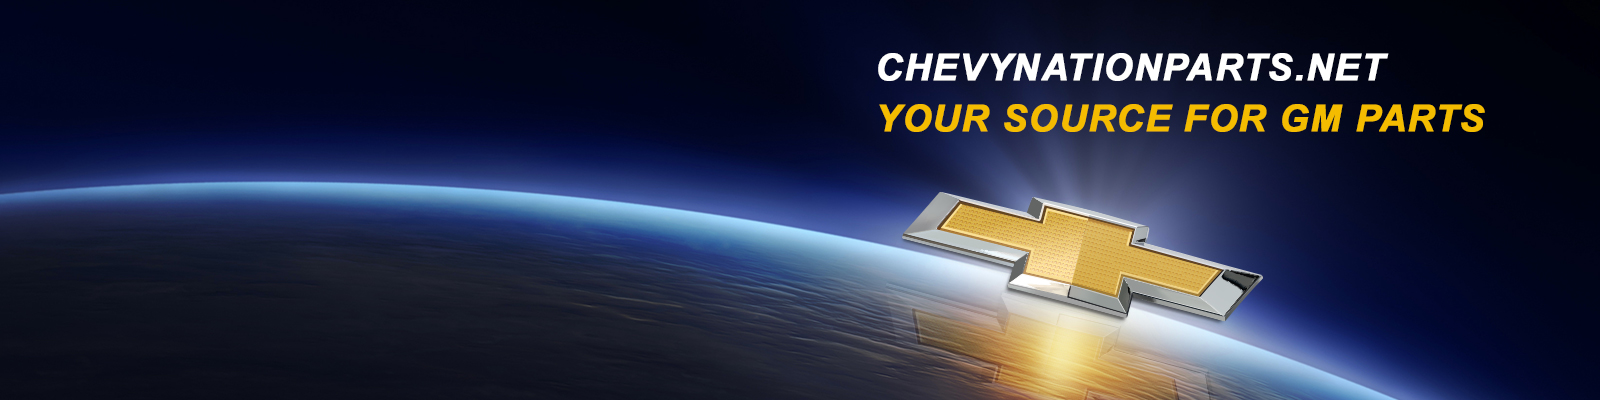 Chevy Nation Parts Banner 1